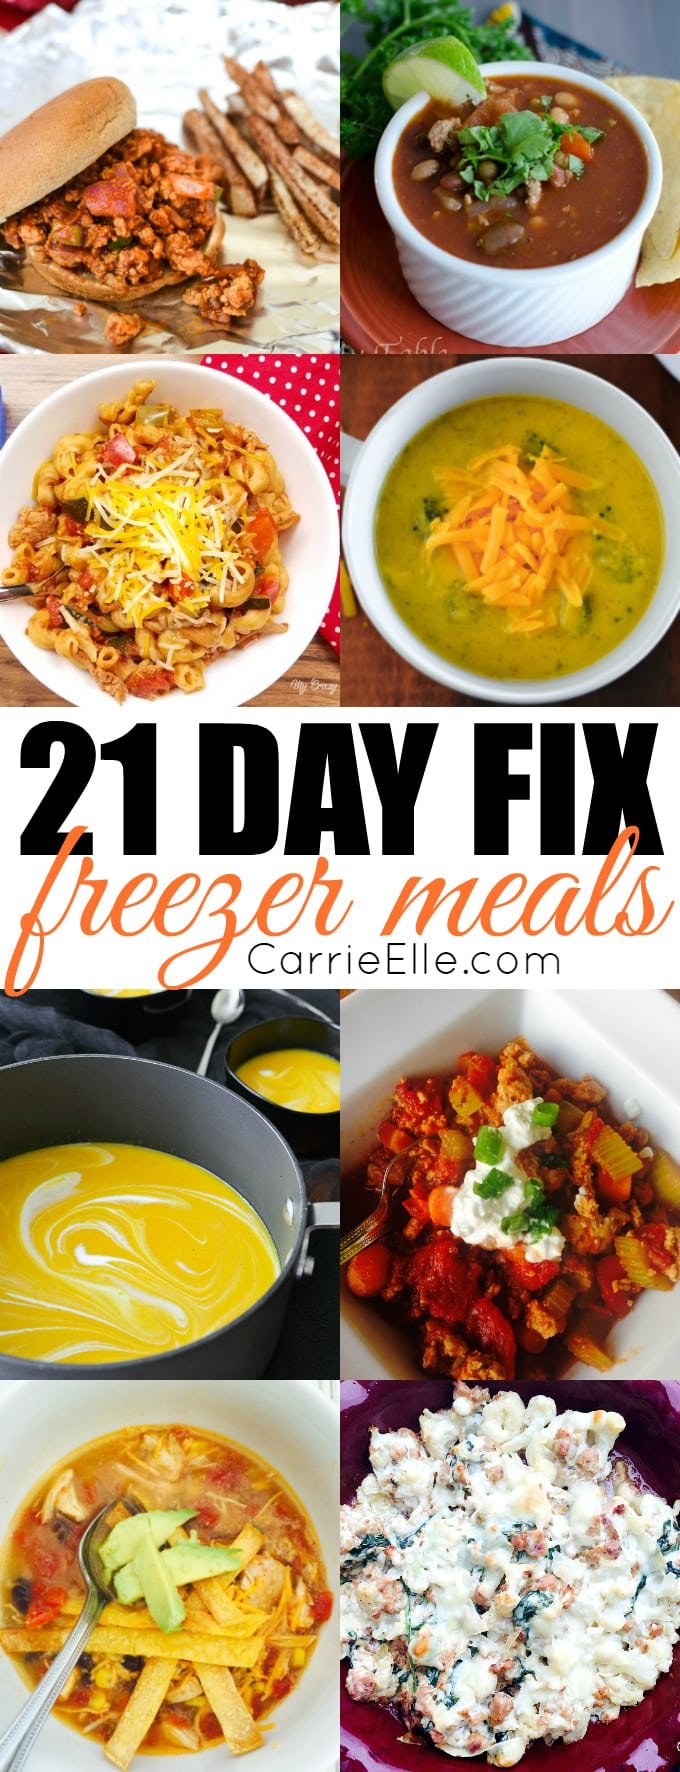 21 Day Fix Freezer Meals